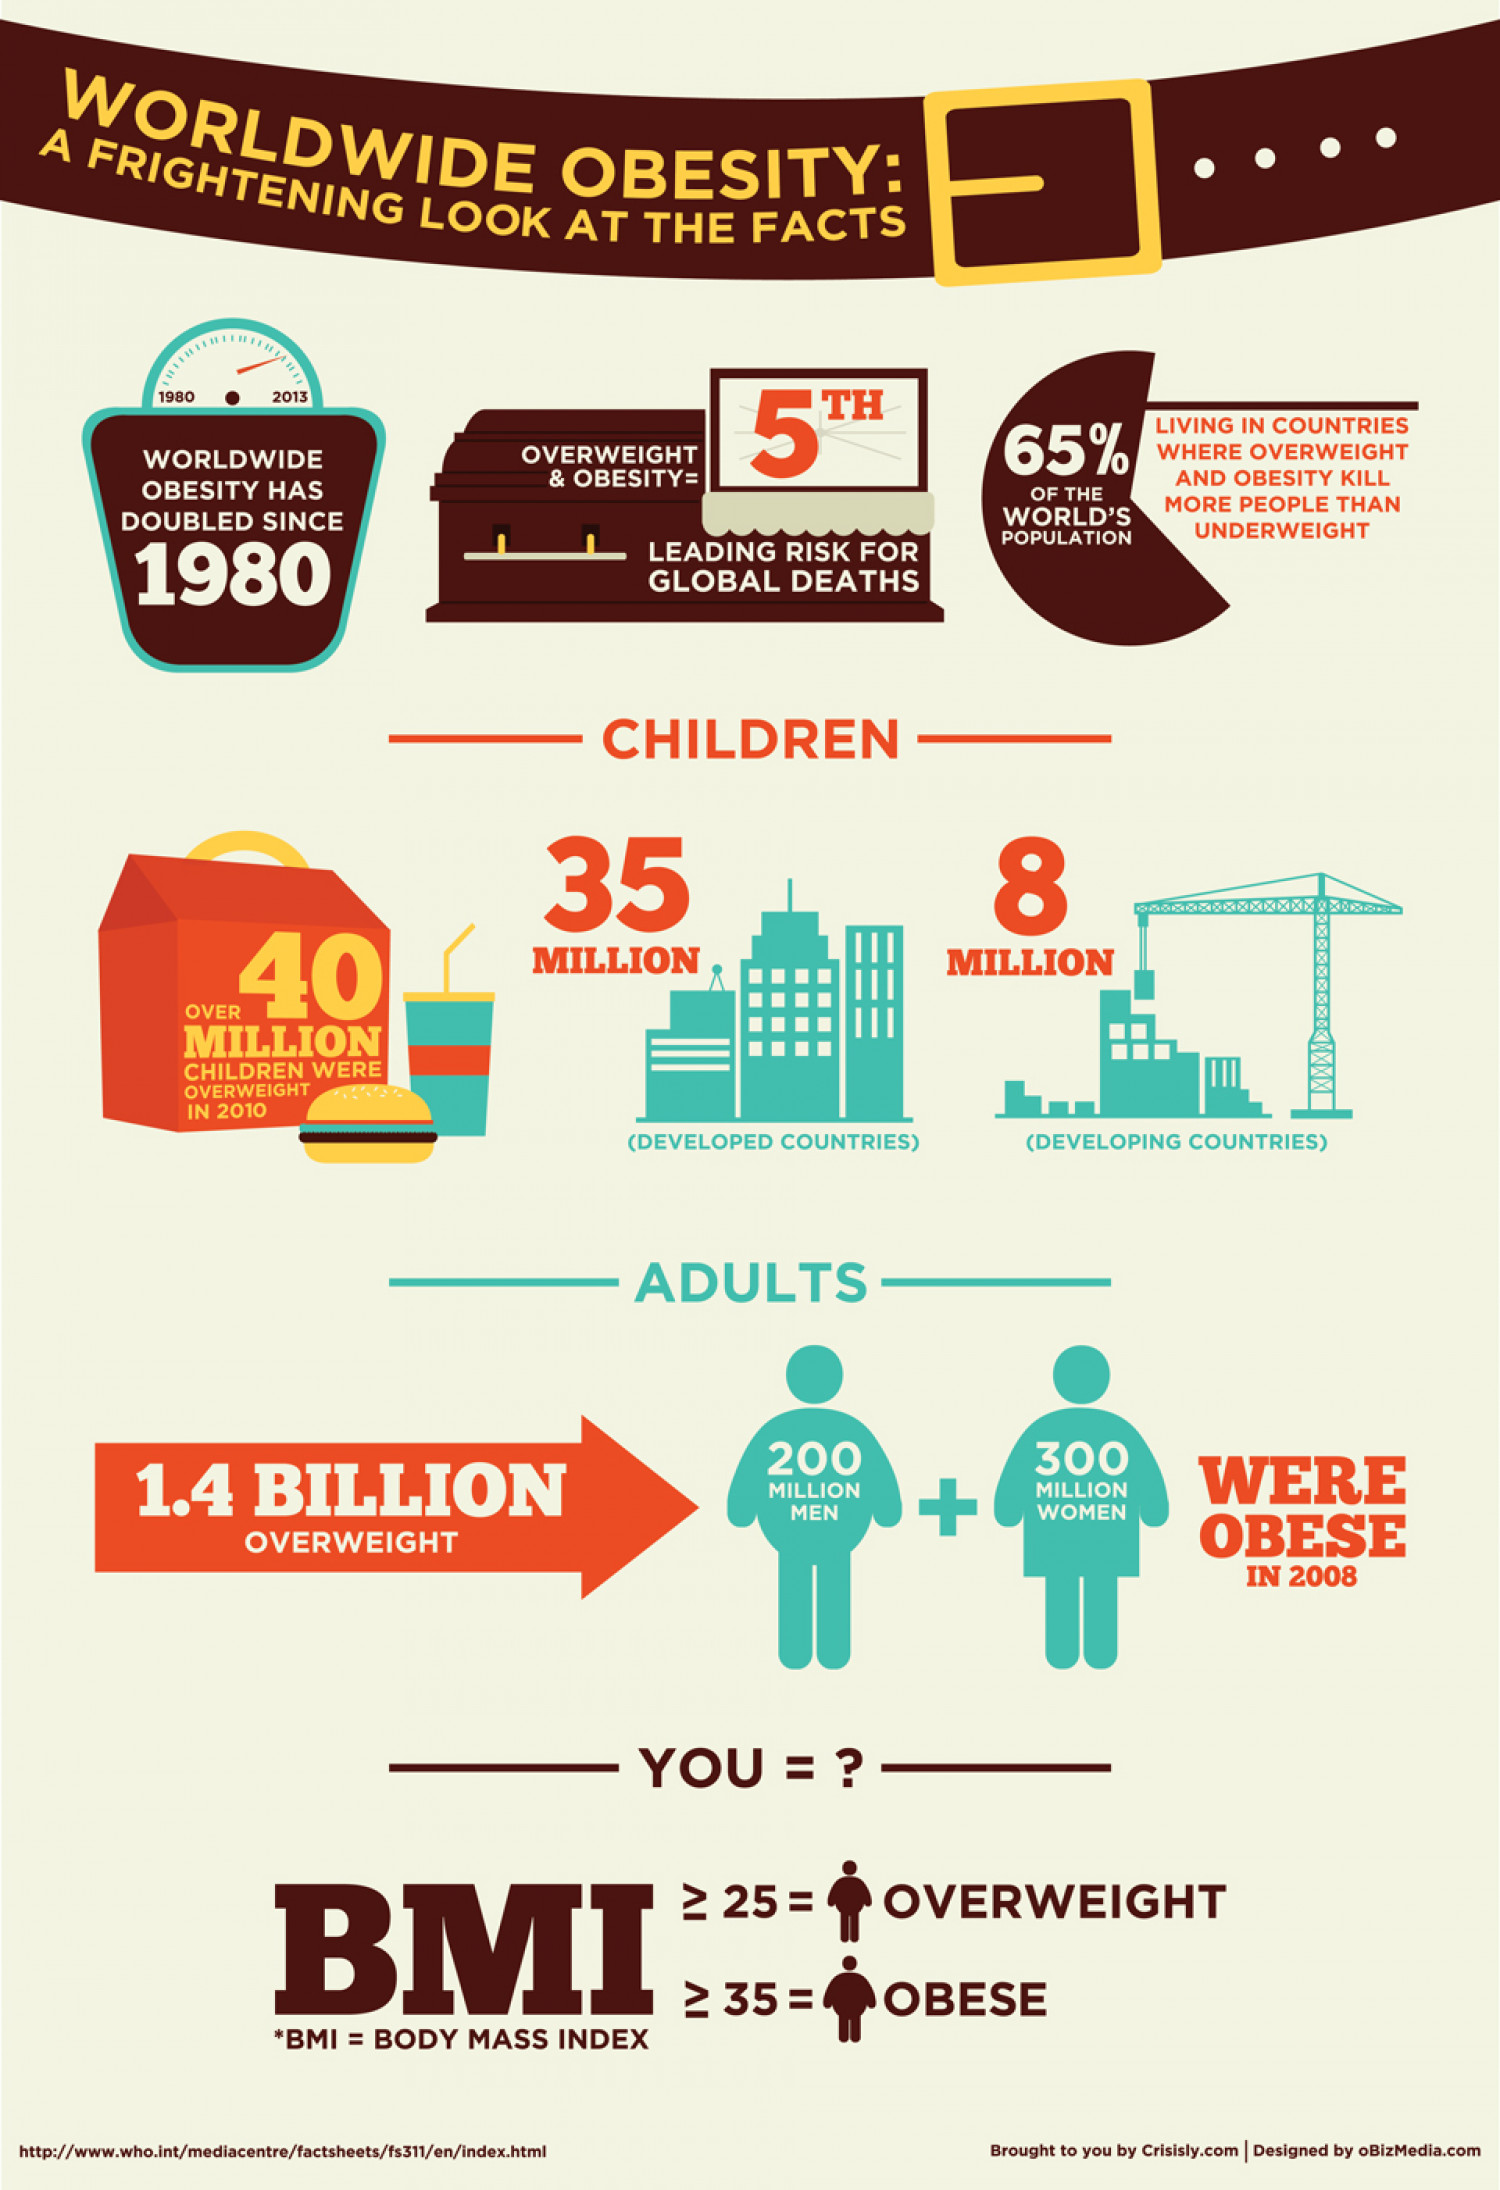 Worldwide Obesity - A Frightening Look at The Facts Infographic